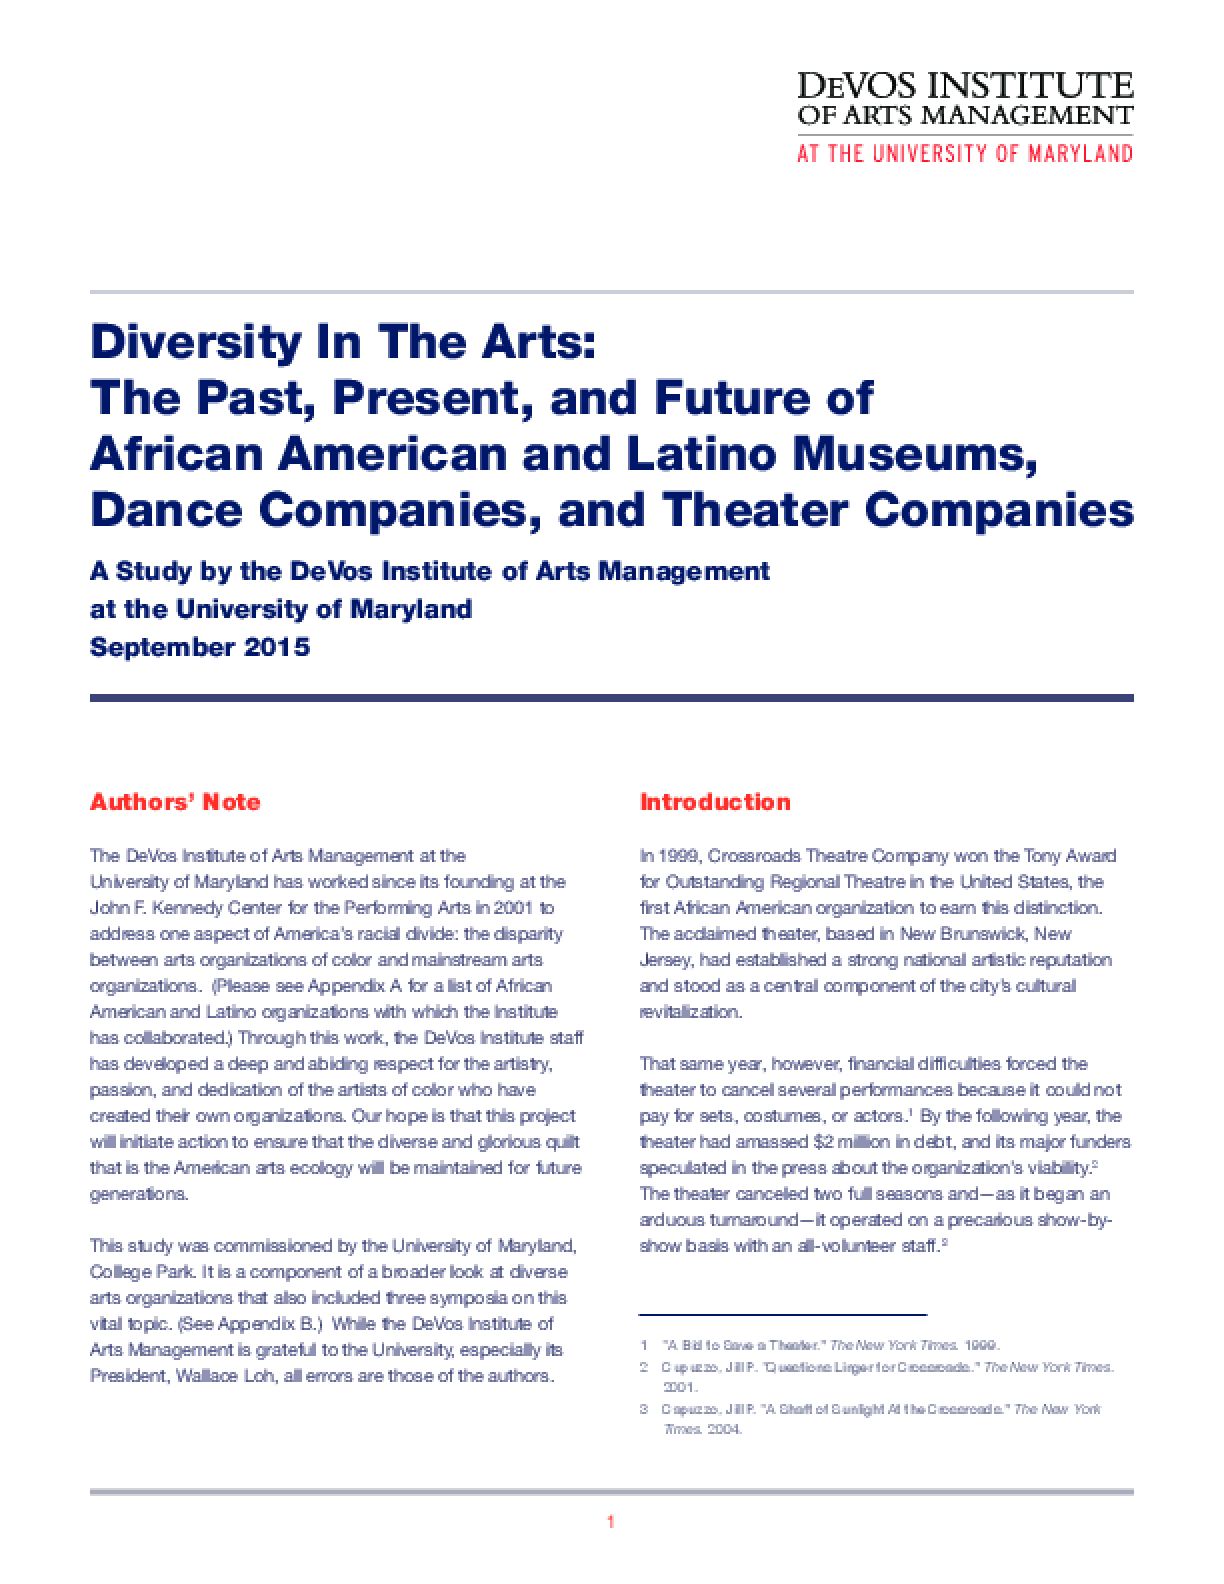 Diversity In The Arts: The Past, Present, and Future of African American and Latino Museums, Dance Companies, and Theater Companies